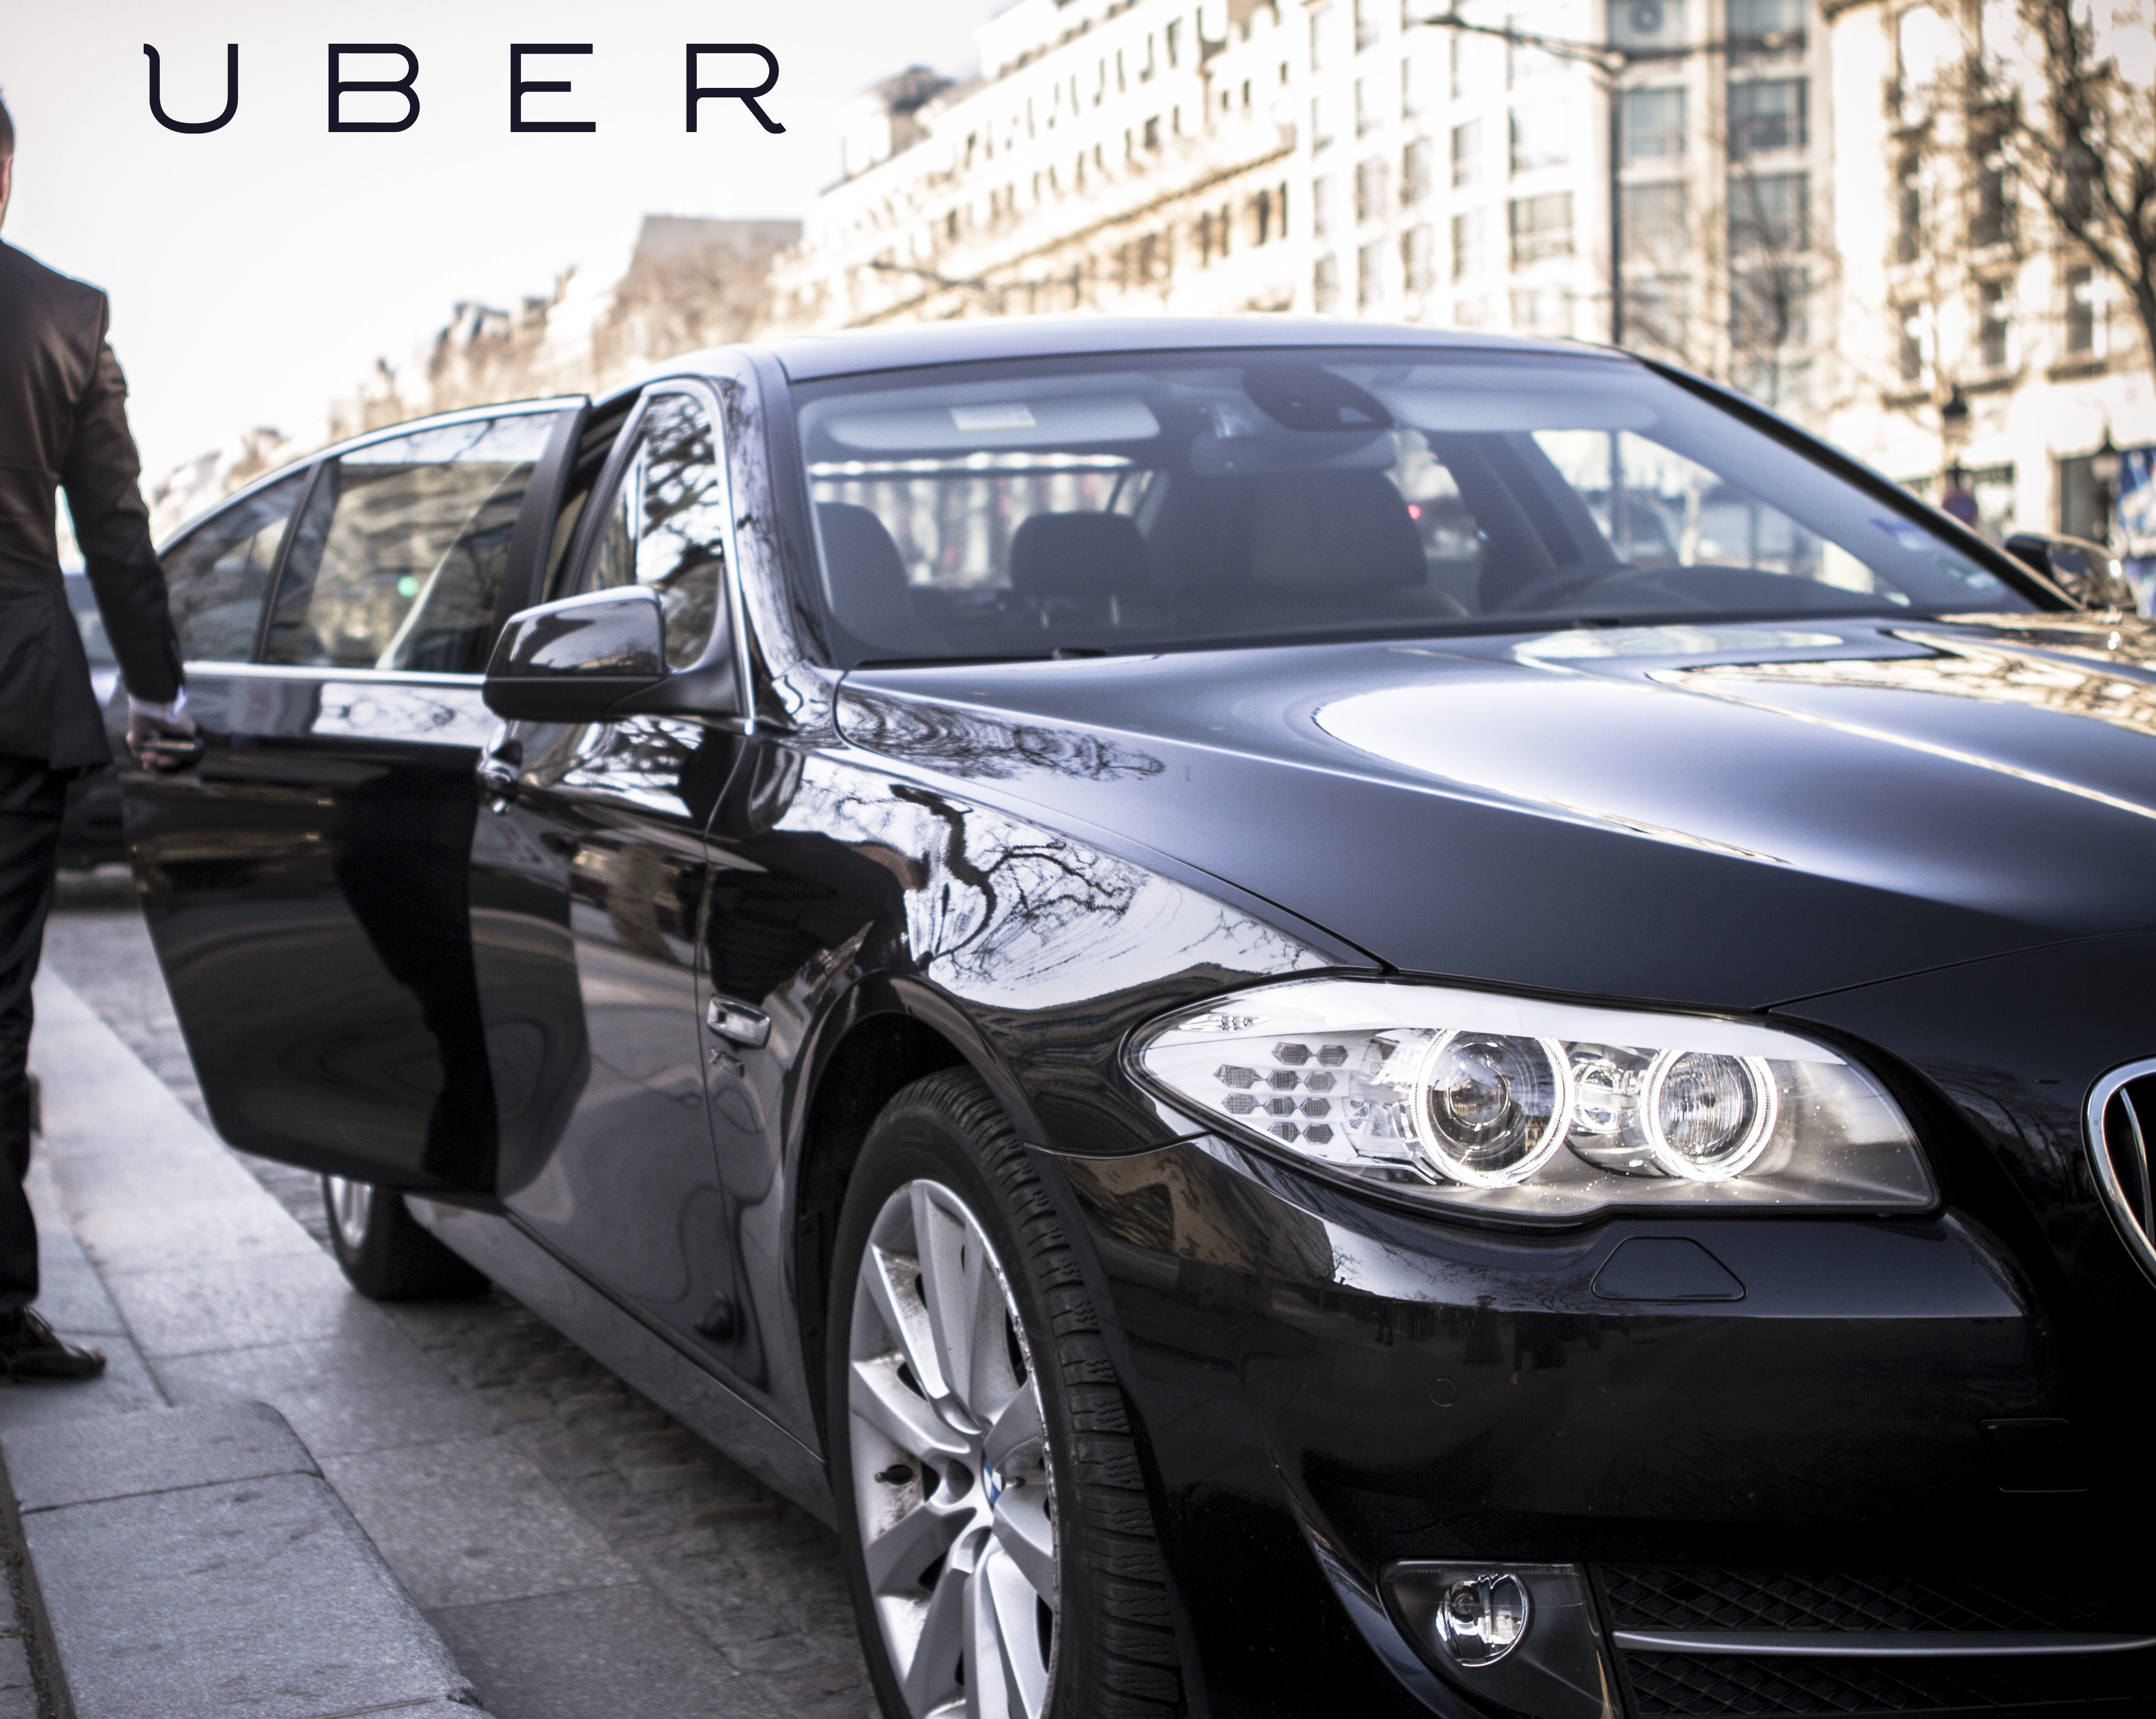 uber is all set to hit the roads of karachi. Black Bedroom Furniture Sets. Home Design Ideas